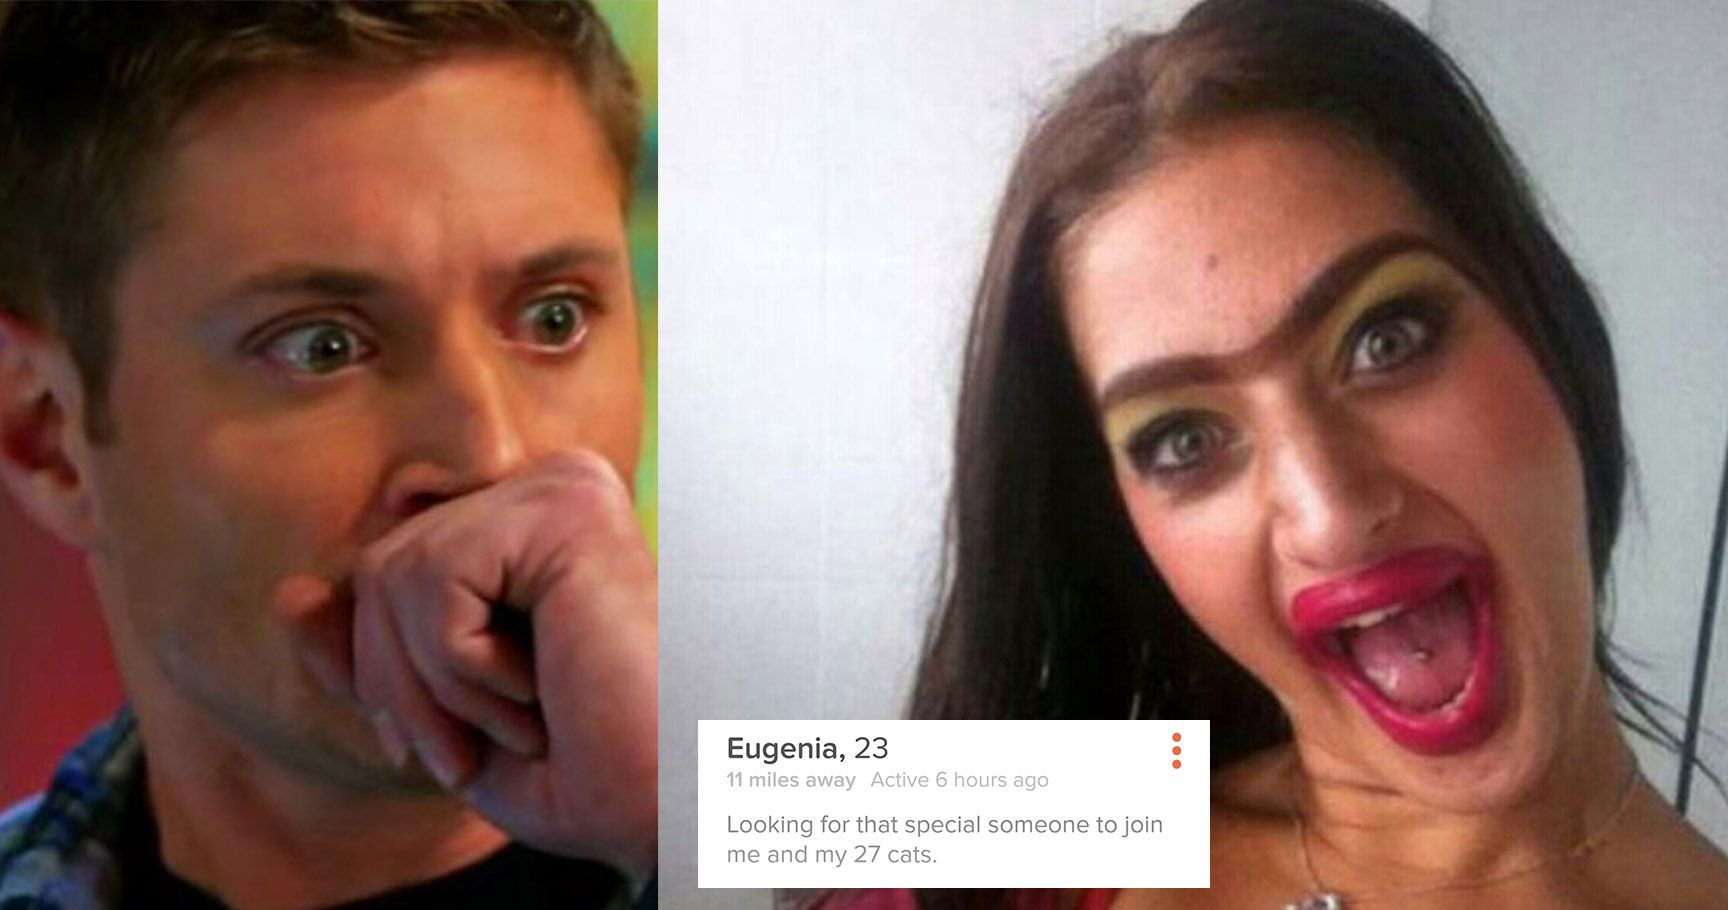 15 Terrifying Tinder Profiles From People Who Shouldn't Date. Ever.